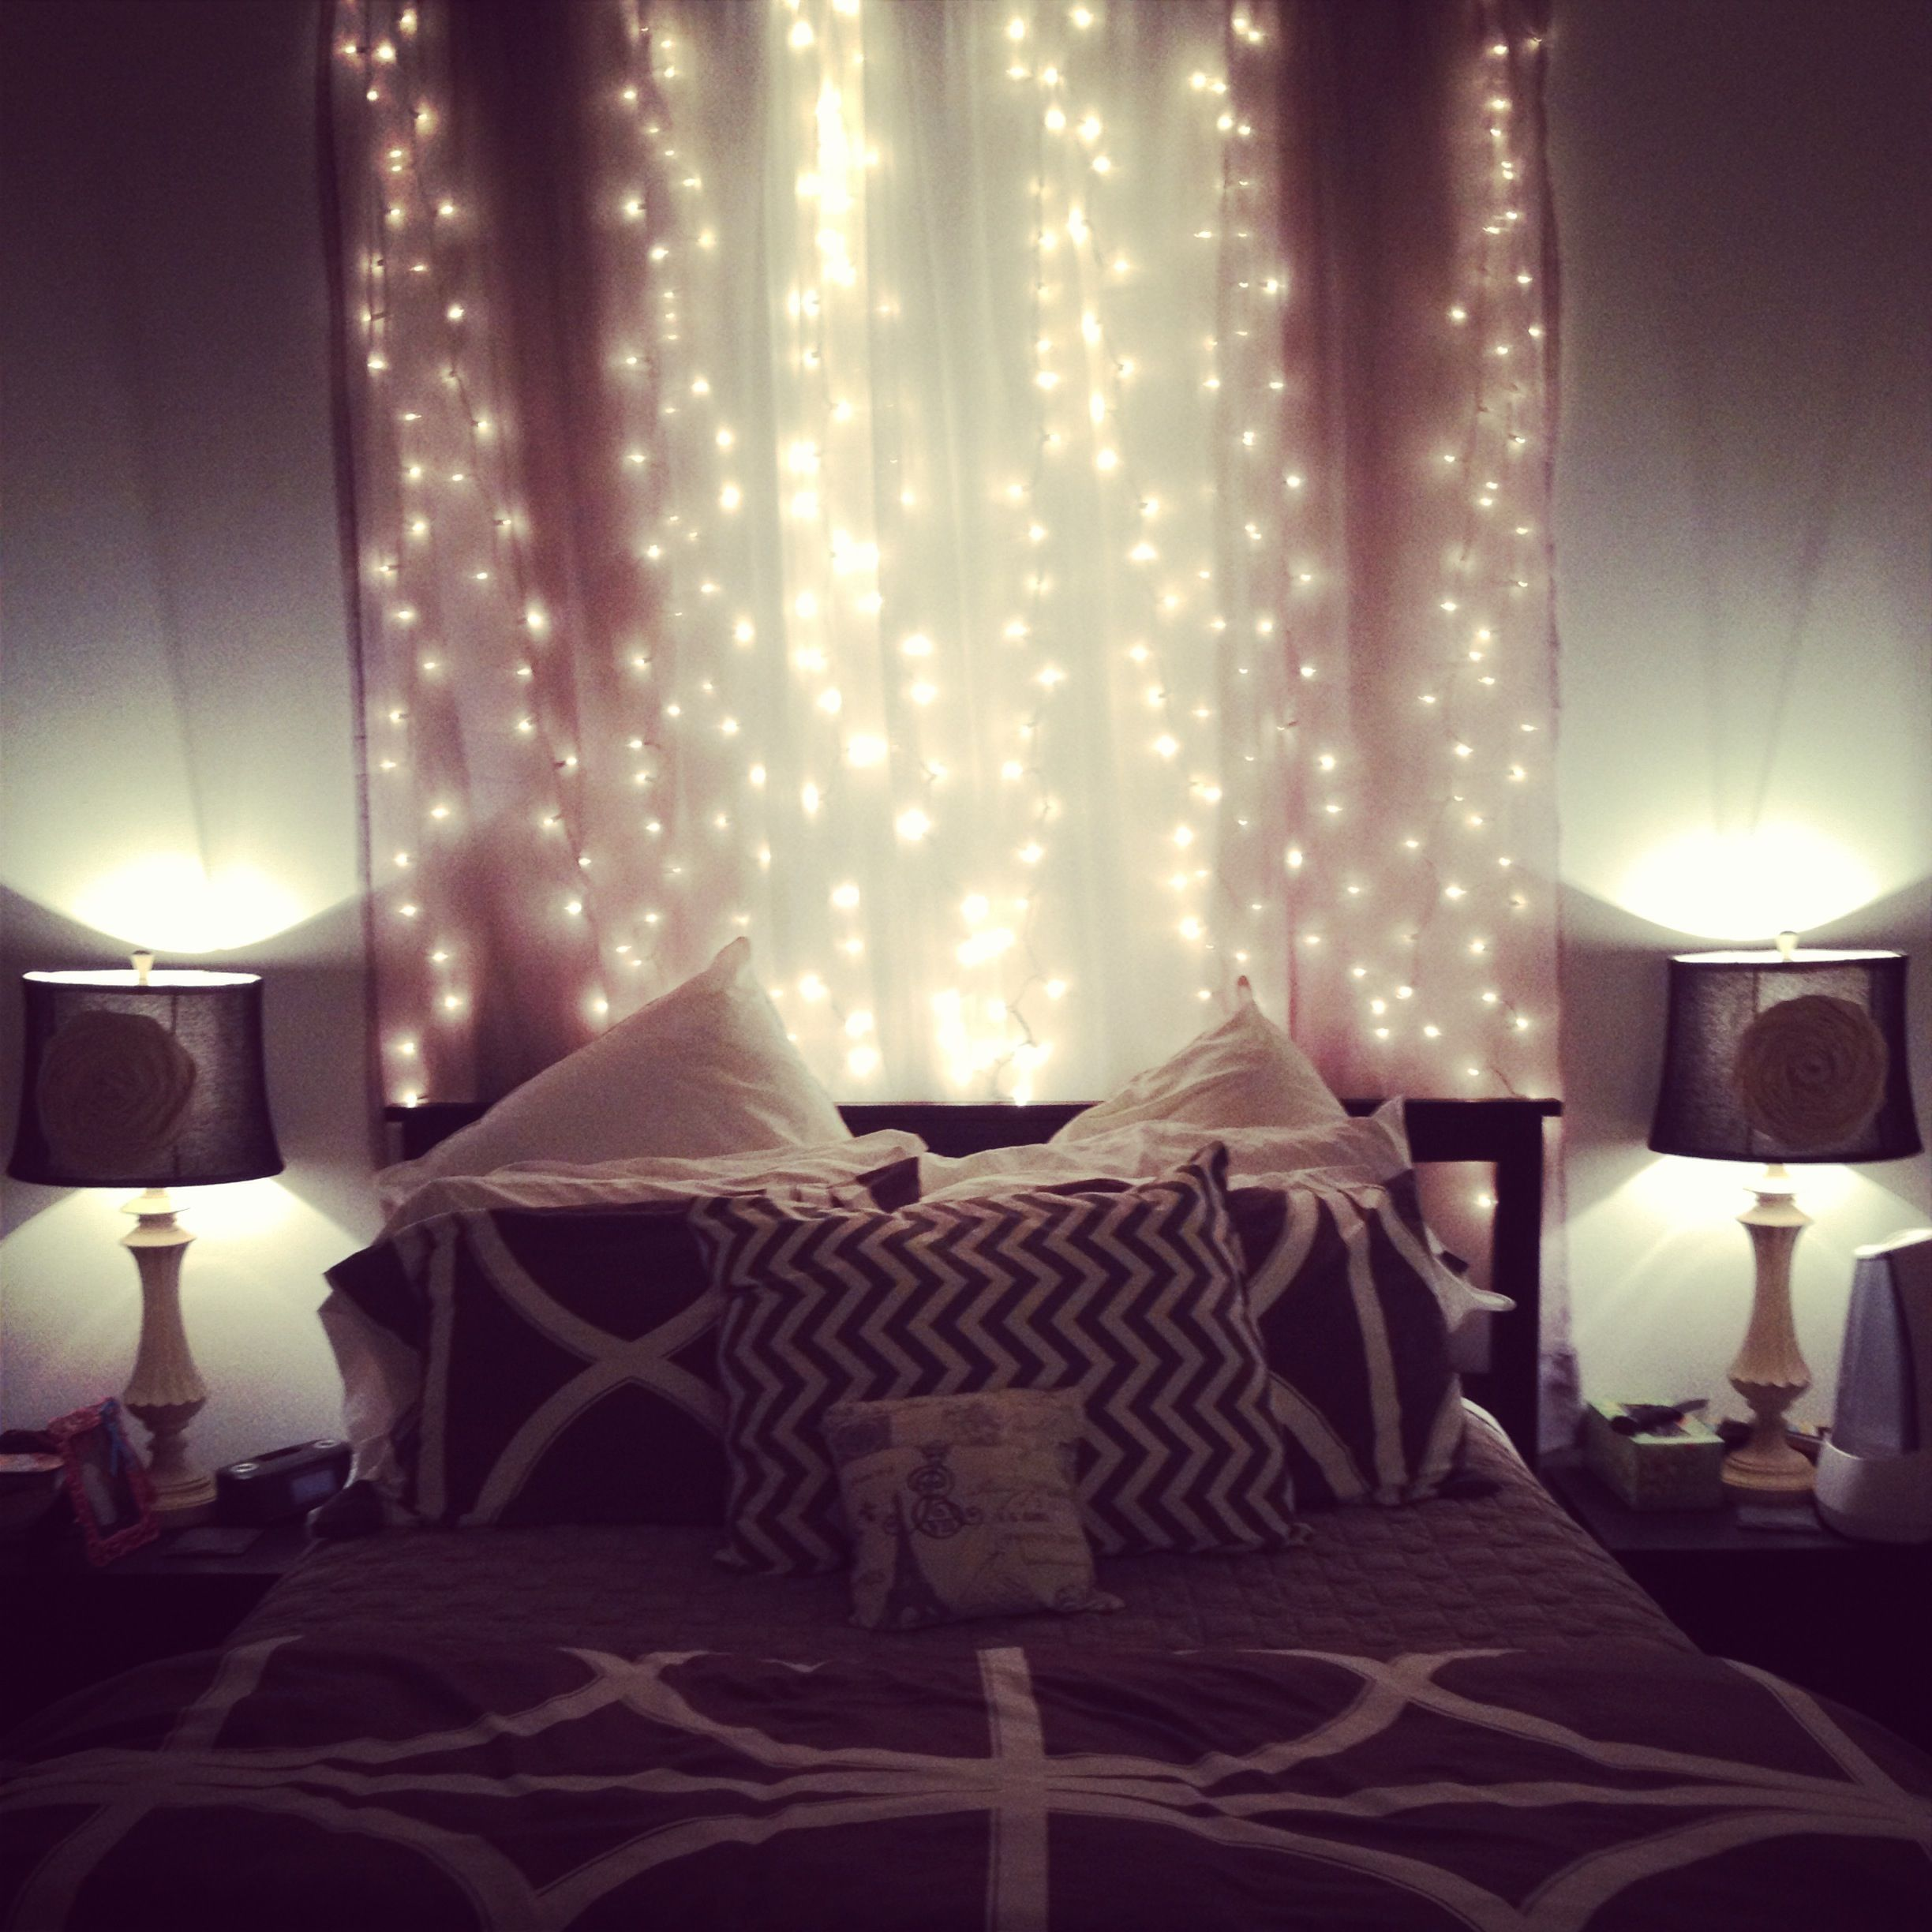 Romantic Bedroom Lighting Ideas Bedroom Cupboard Designs In Pakistan Ultra Modern Bedroom Design Ideas Cool Ideas For Bedrooms For Girls: Fairy Lights In The Bedroom...